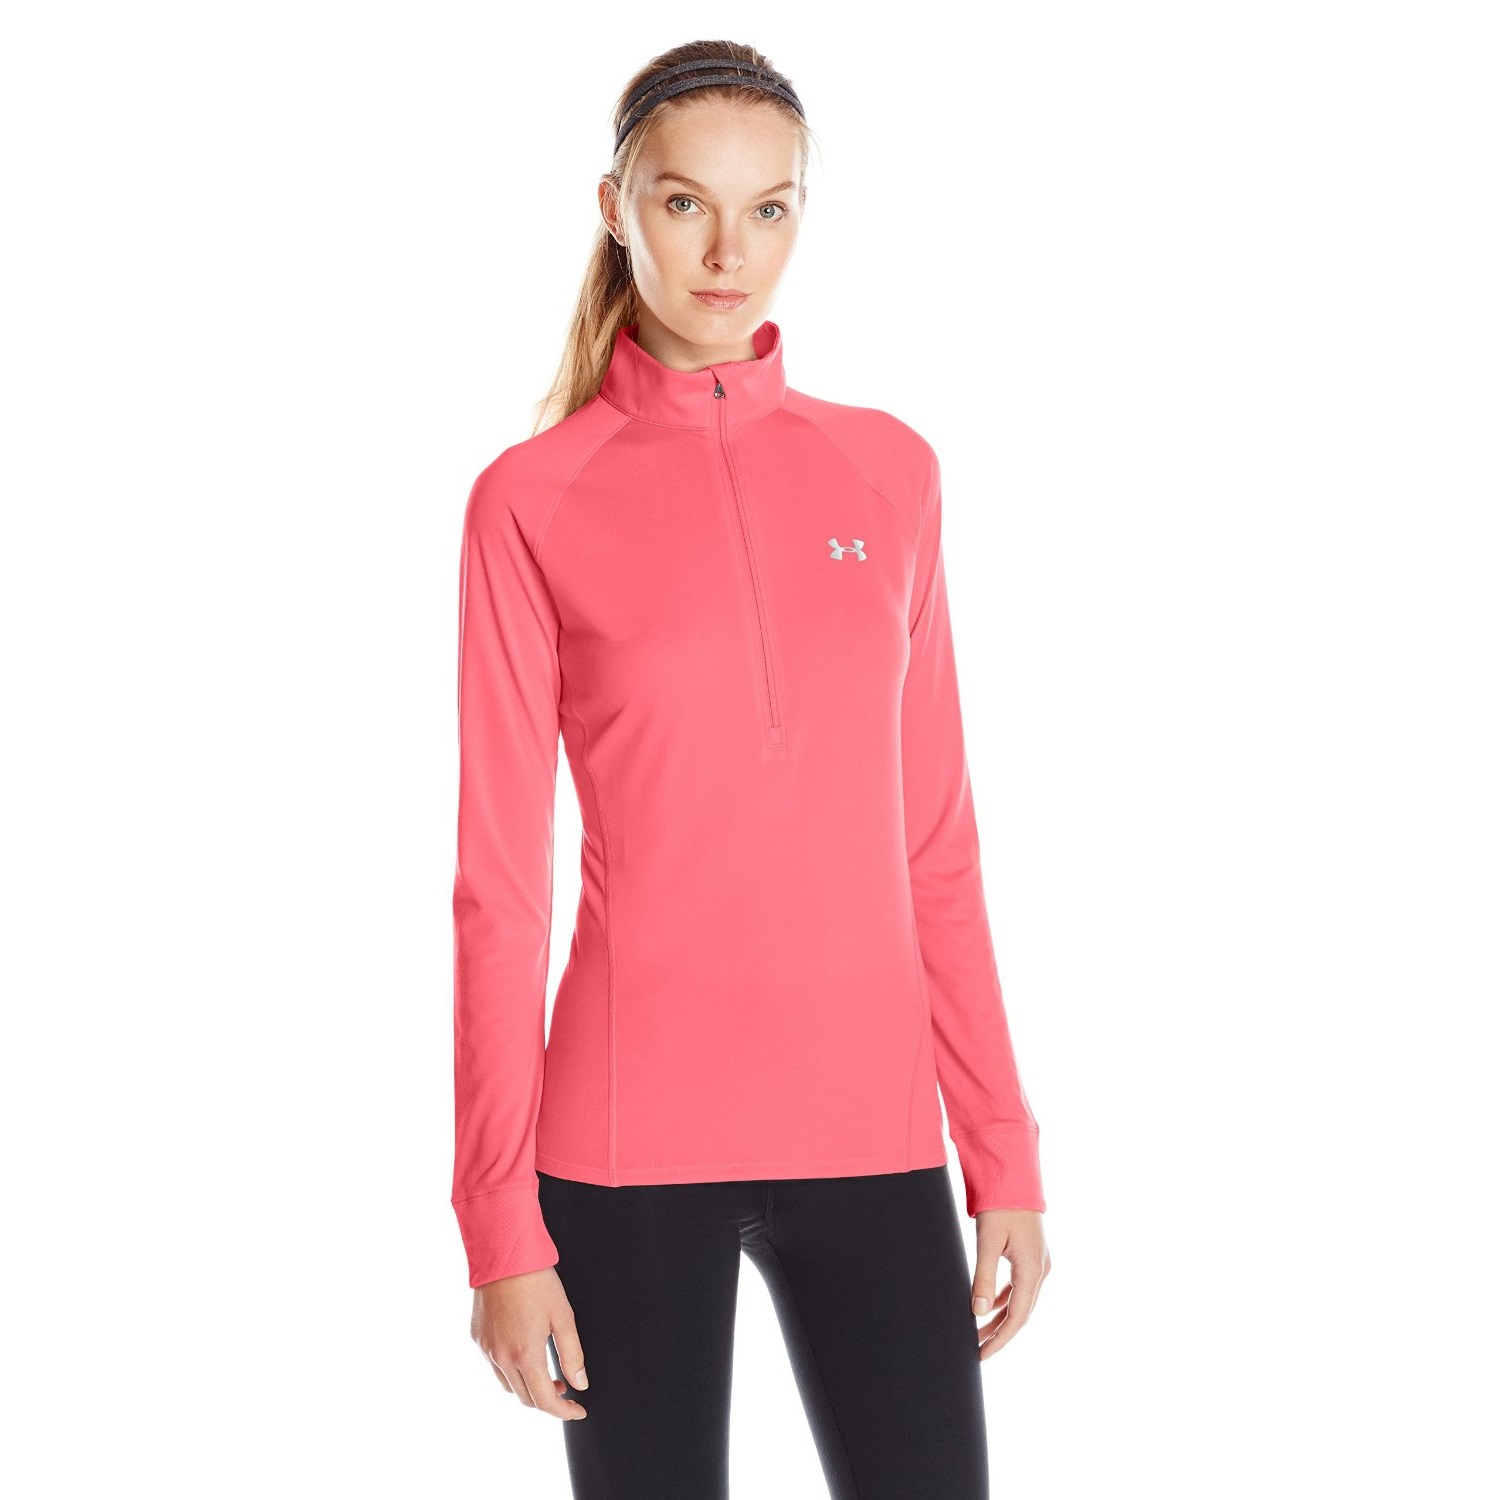 under armour womens tech yoga shirt cerise/metallic silver